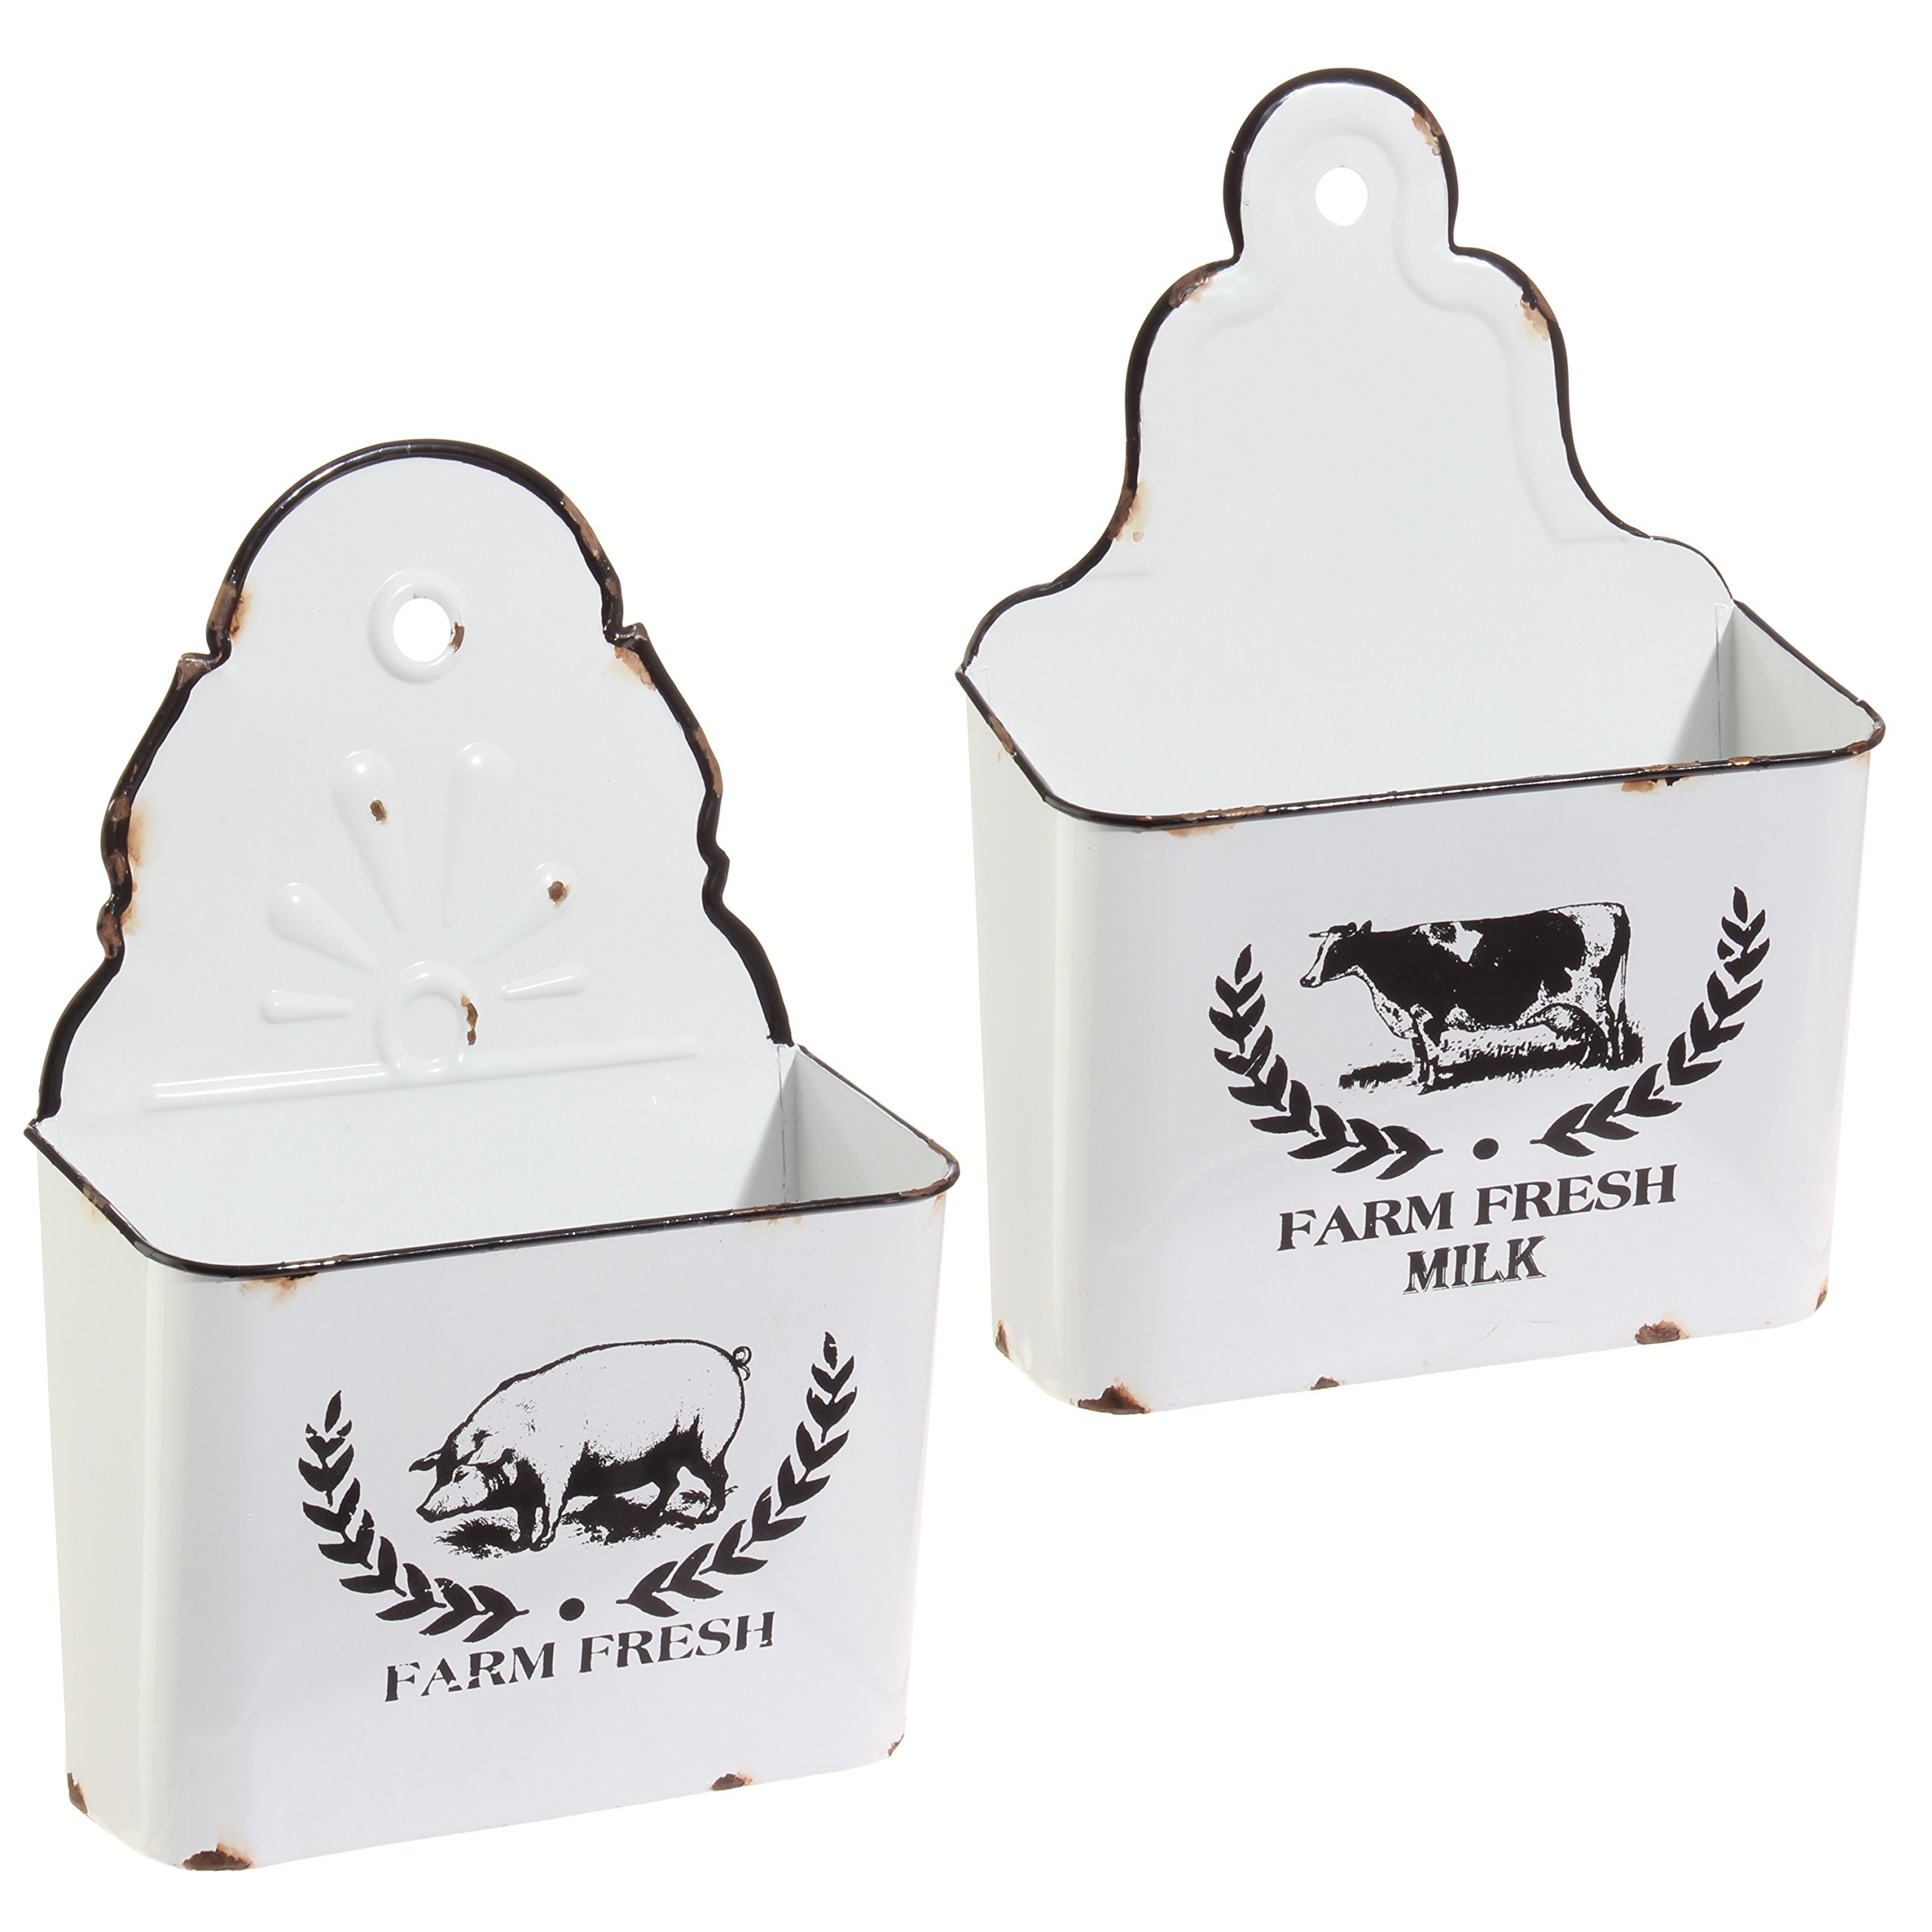 Set of 2 Metal White Enamelware Distressed Wall Bins Farm Fresh Country Style by RAZ Imports